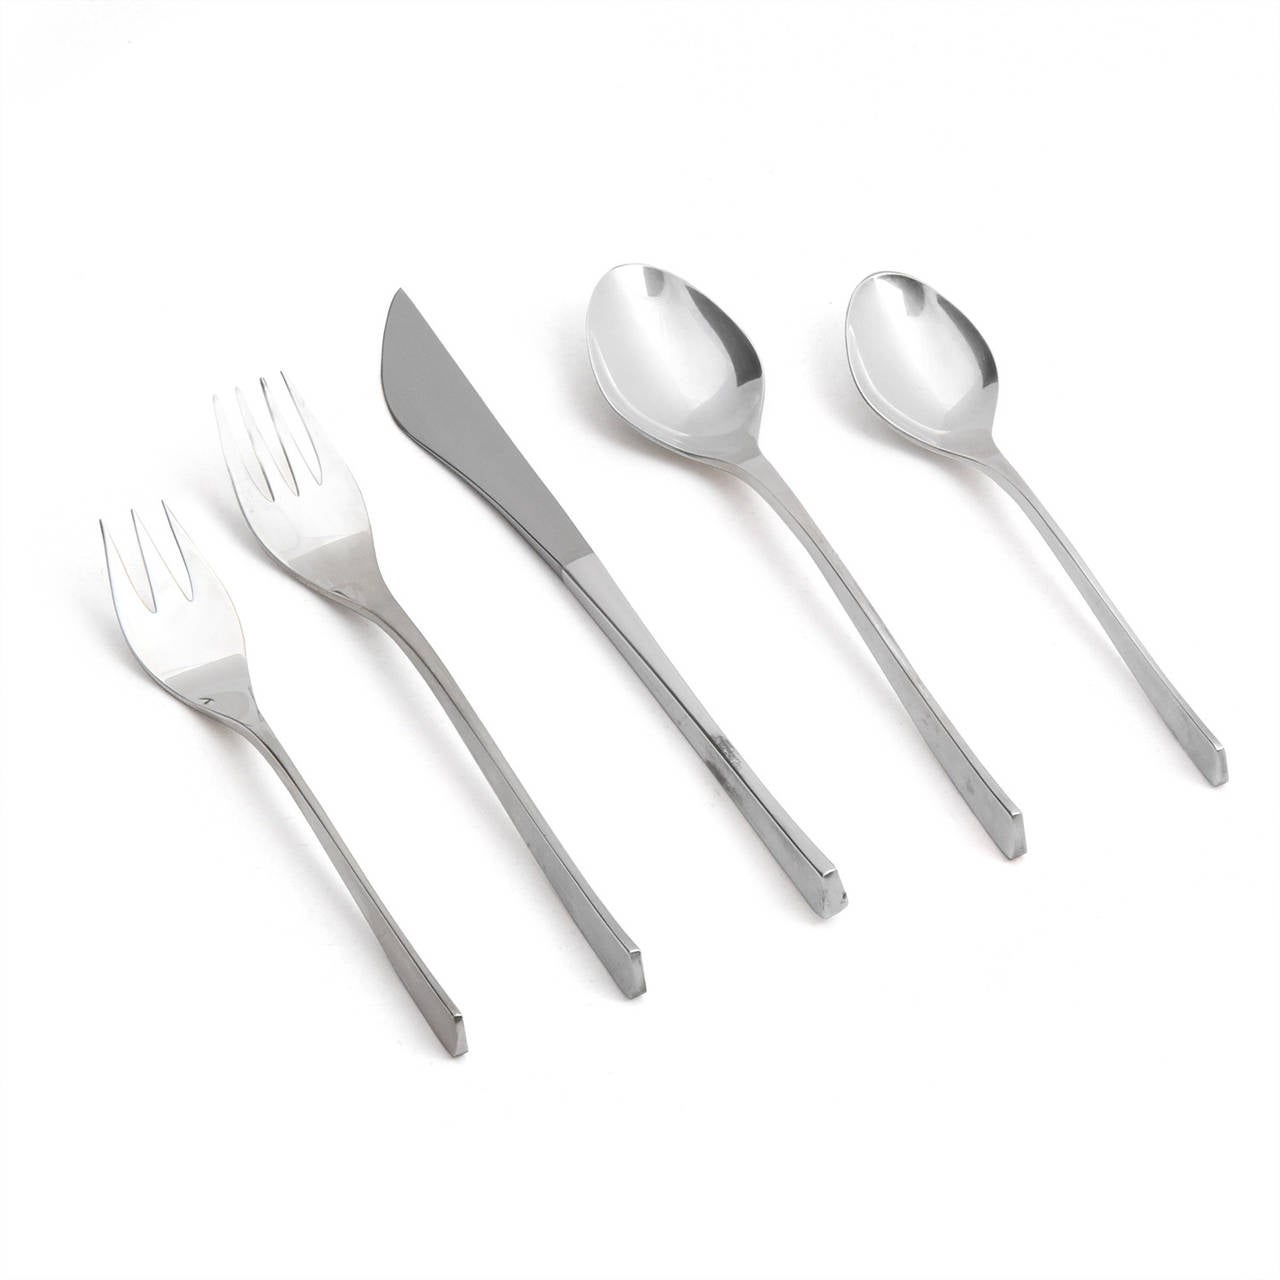 A service for twelve (12), of sculptural, Vision flatware in sterling created by the artist and jewelry designer Ronald Hayes Pearson. 